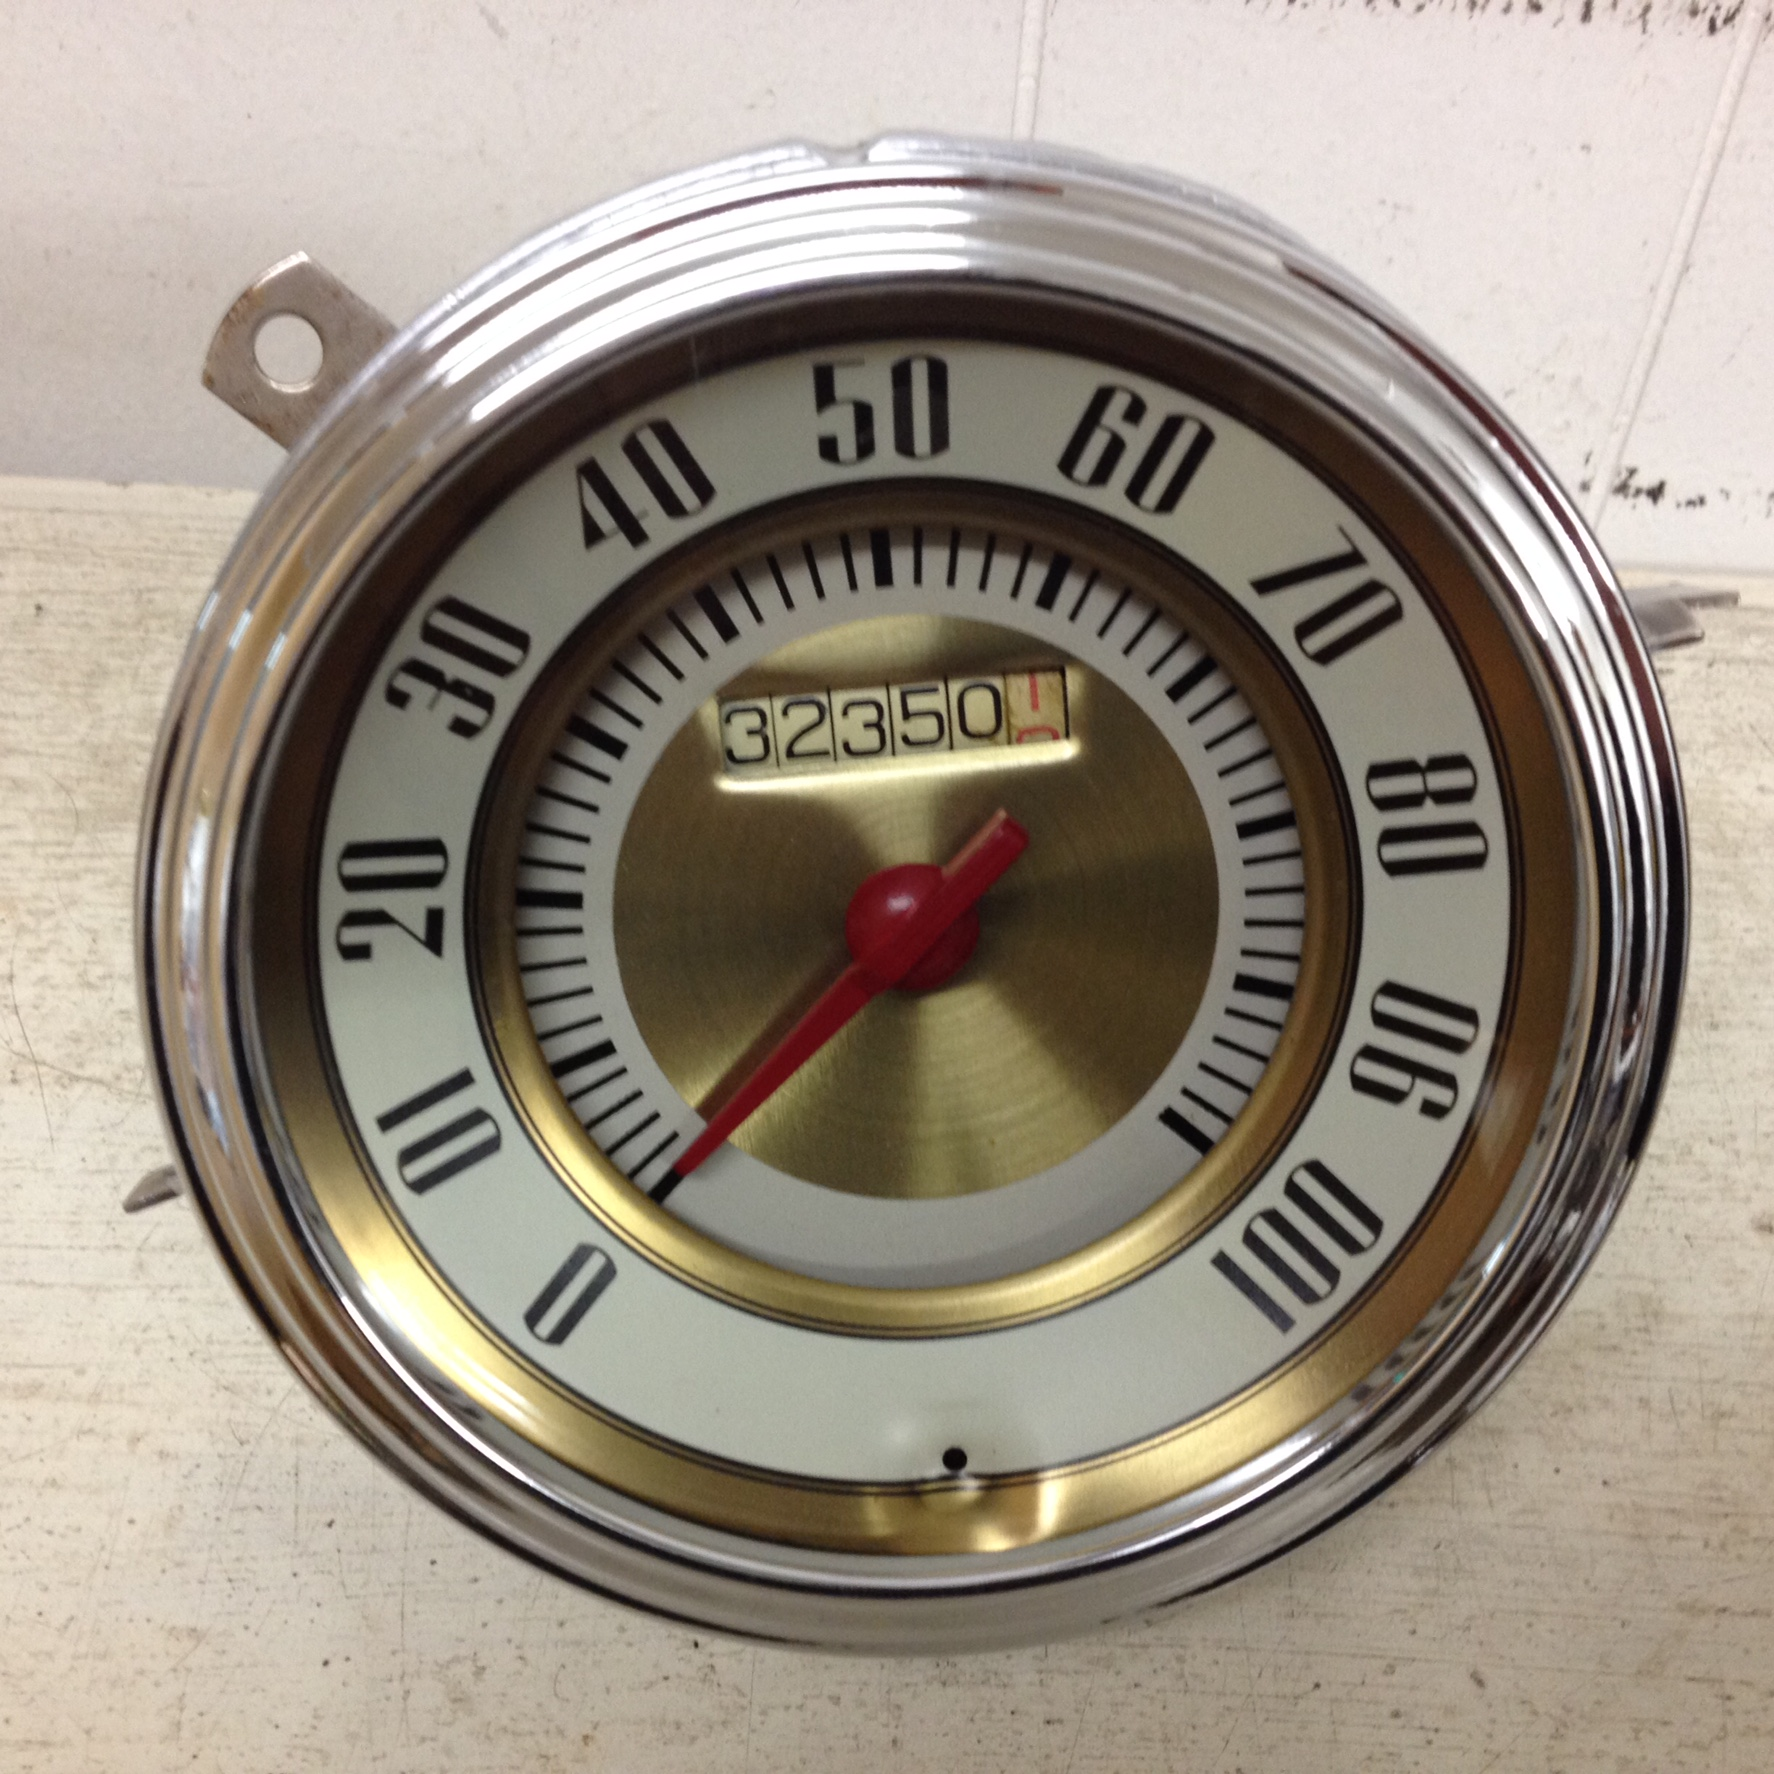 One of our beautifully restored speedometers